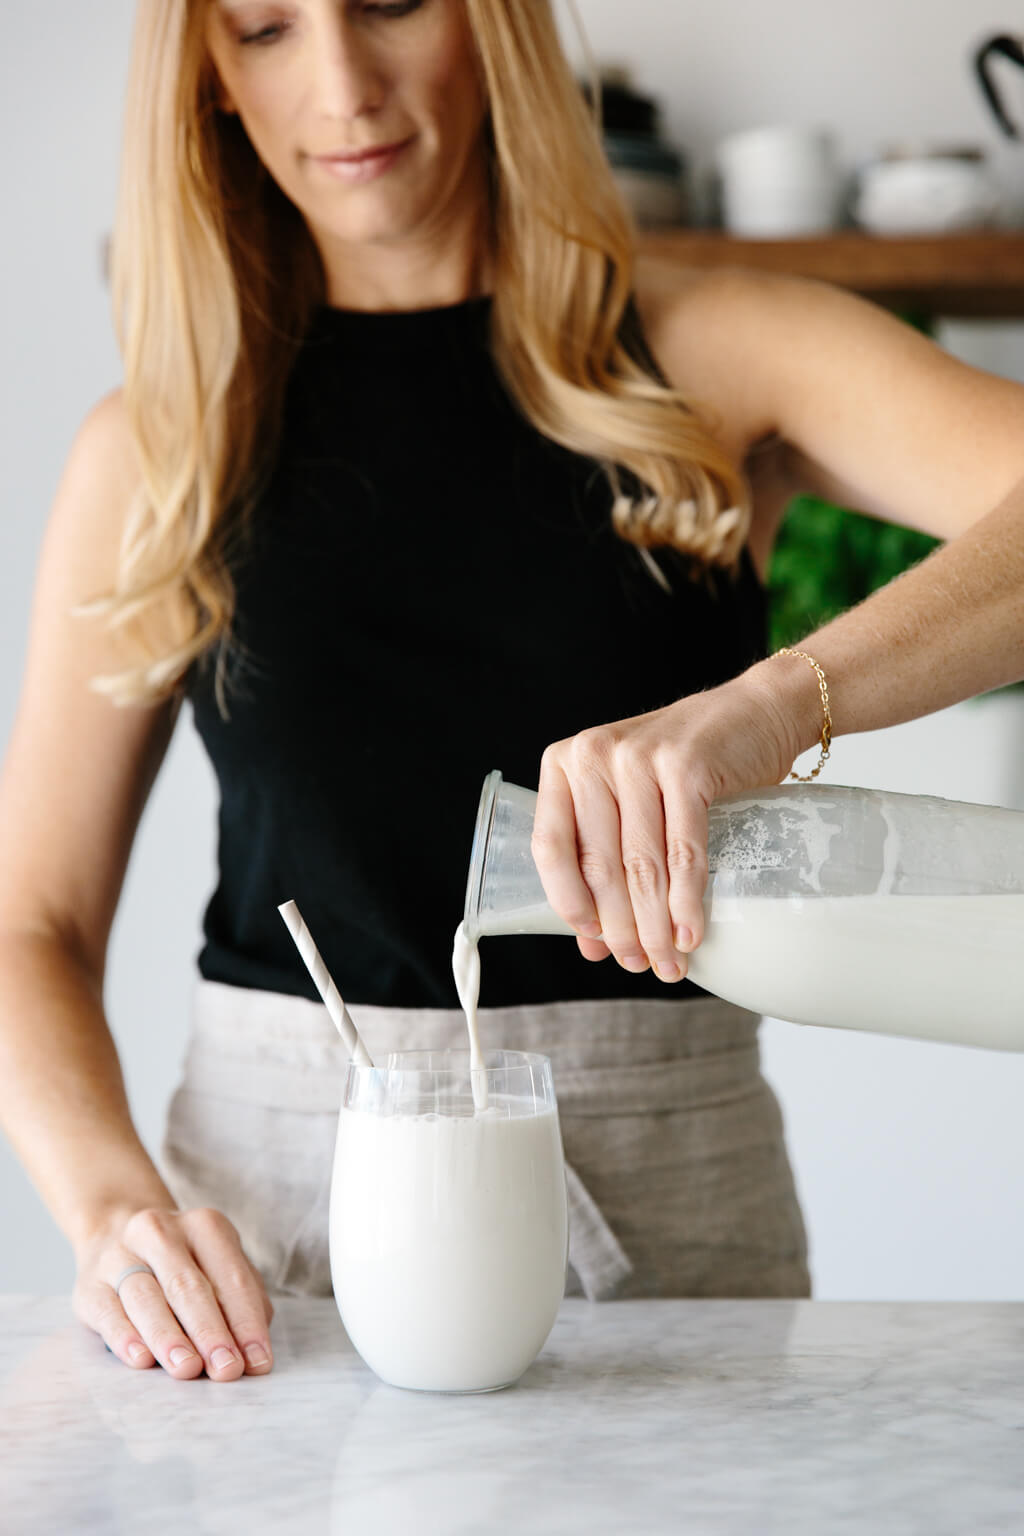 (dairy-free, vegan) Homemade cashew milk is a delicious and creamy nut milk. And unlike almond milk, it doesn't have to be strained, which makes it even easier!